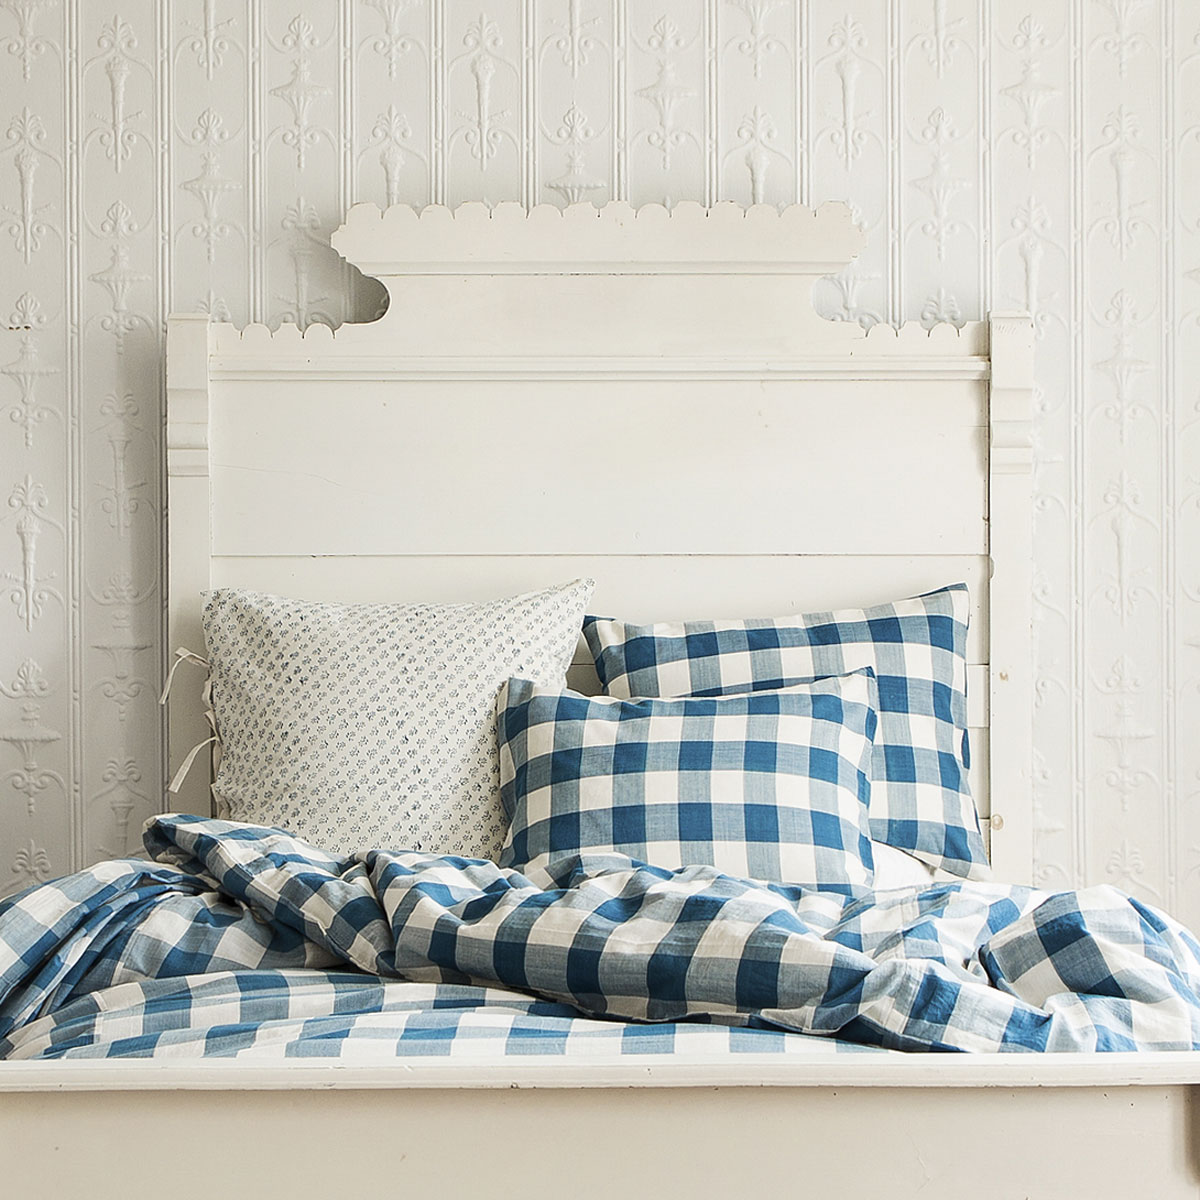 Indigo Check Duvet Cover Les Indiennes